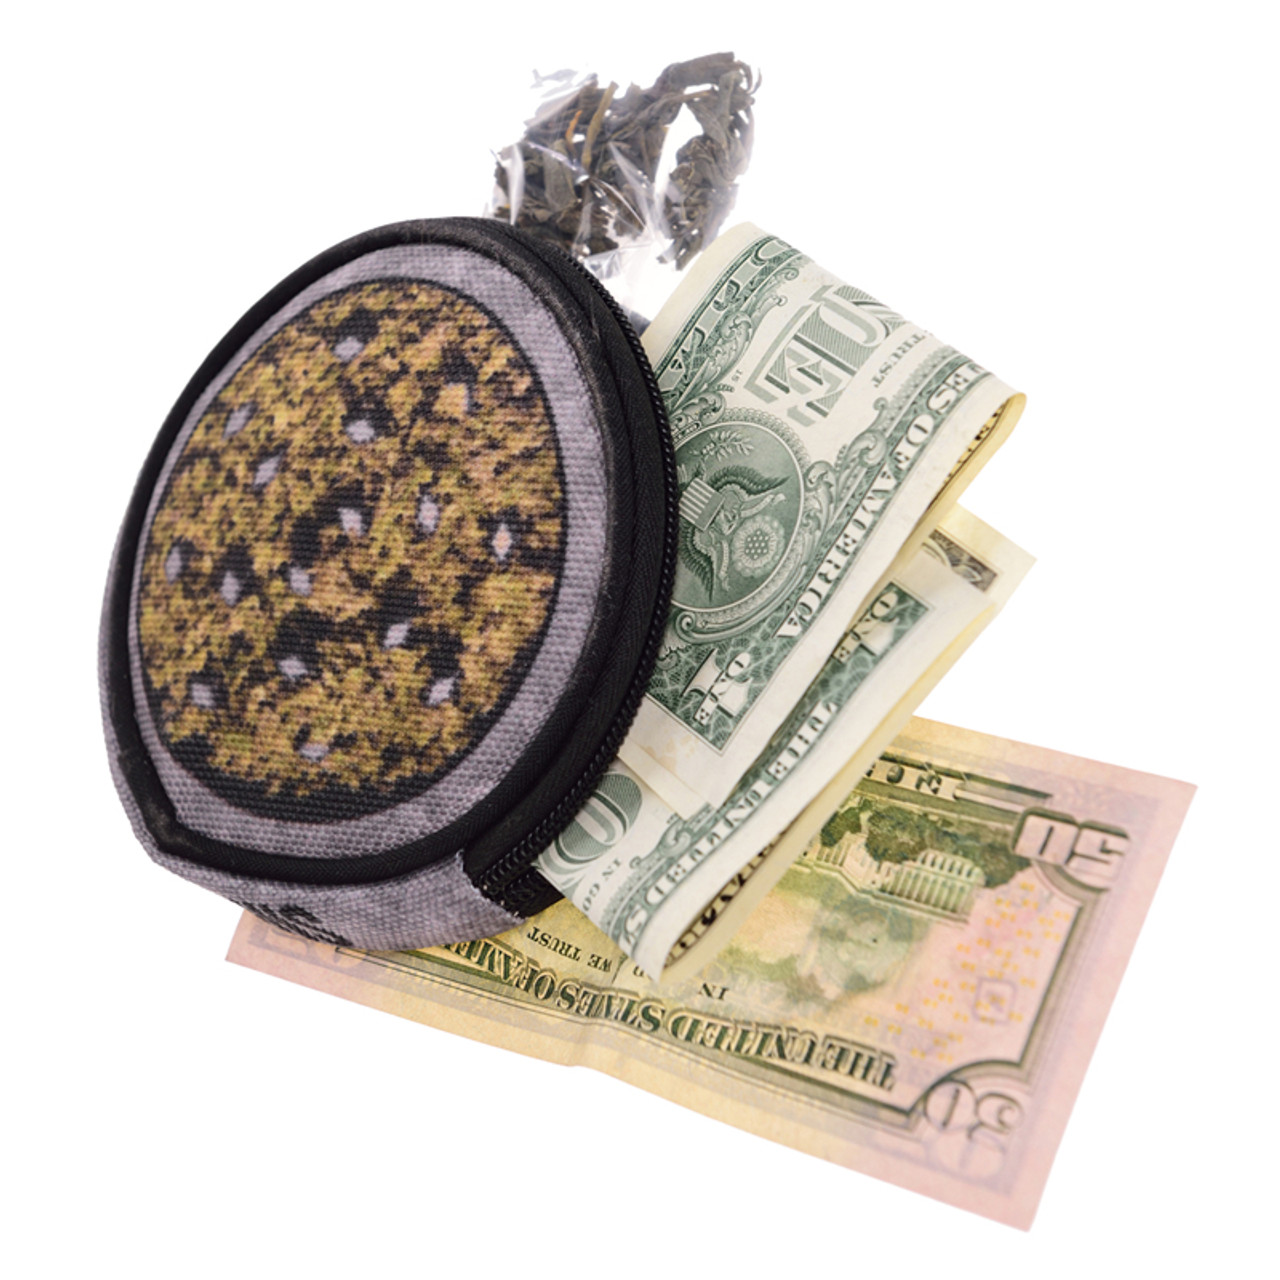 Weed Grinder Round Graphic Print Coin Purse - 18 Styles shown with cash and marijuana sticking out